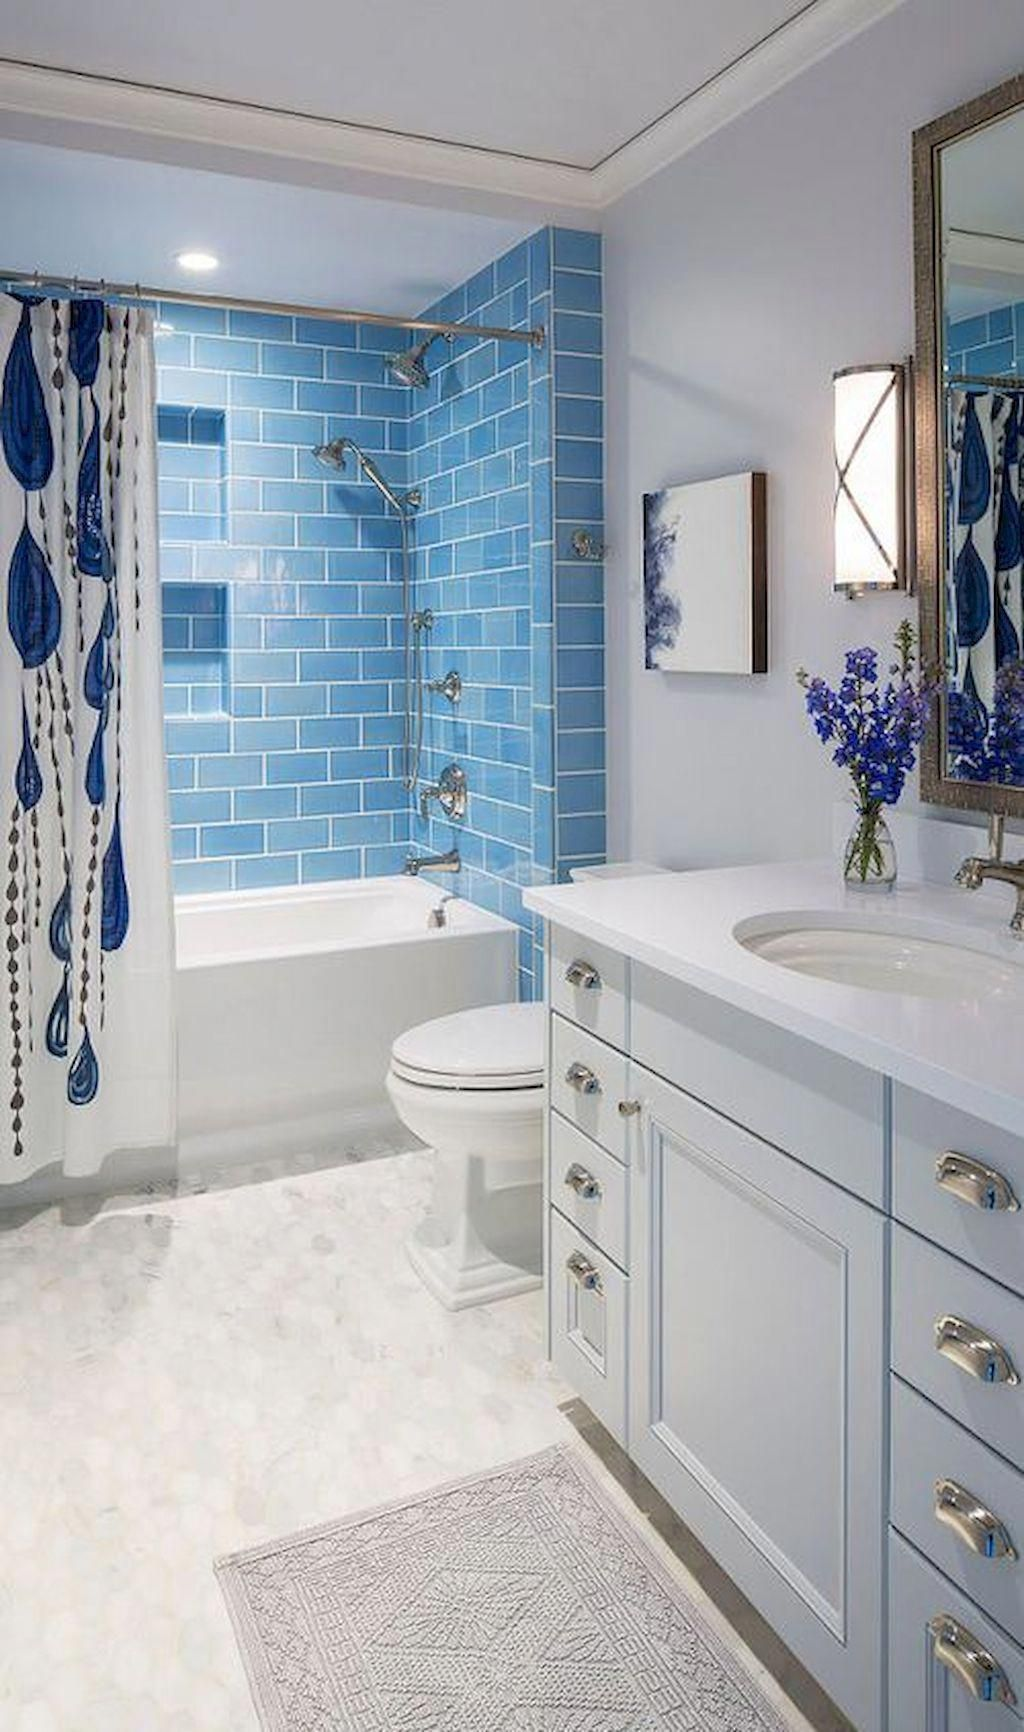 Good Photos Bathroom Remodel Blue Concepts Pop Quiz What S The Typical Amount Of Space Neces Blue Bathroom Tile Minimalist Bathroom Design Minimalist Bathroom